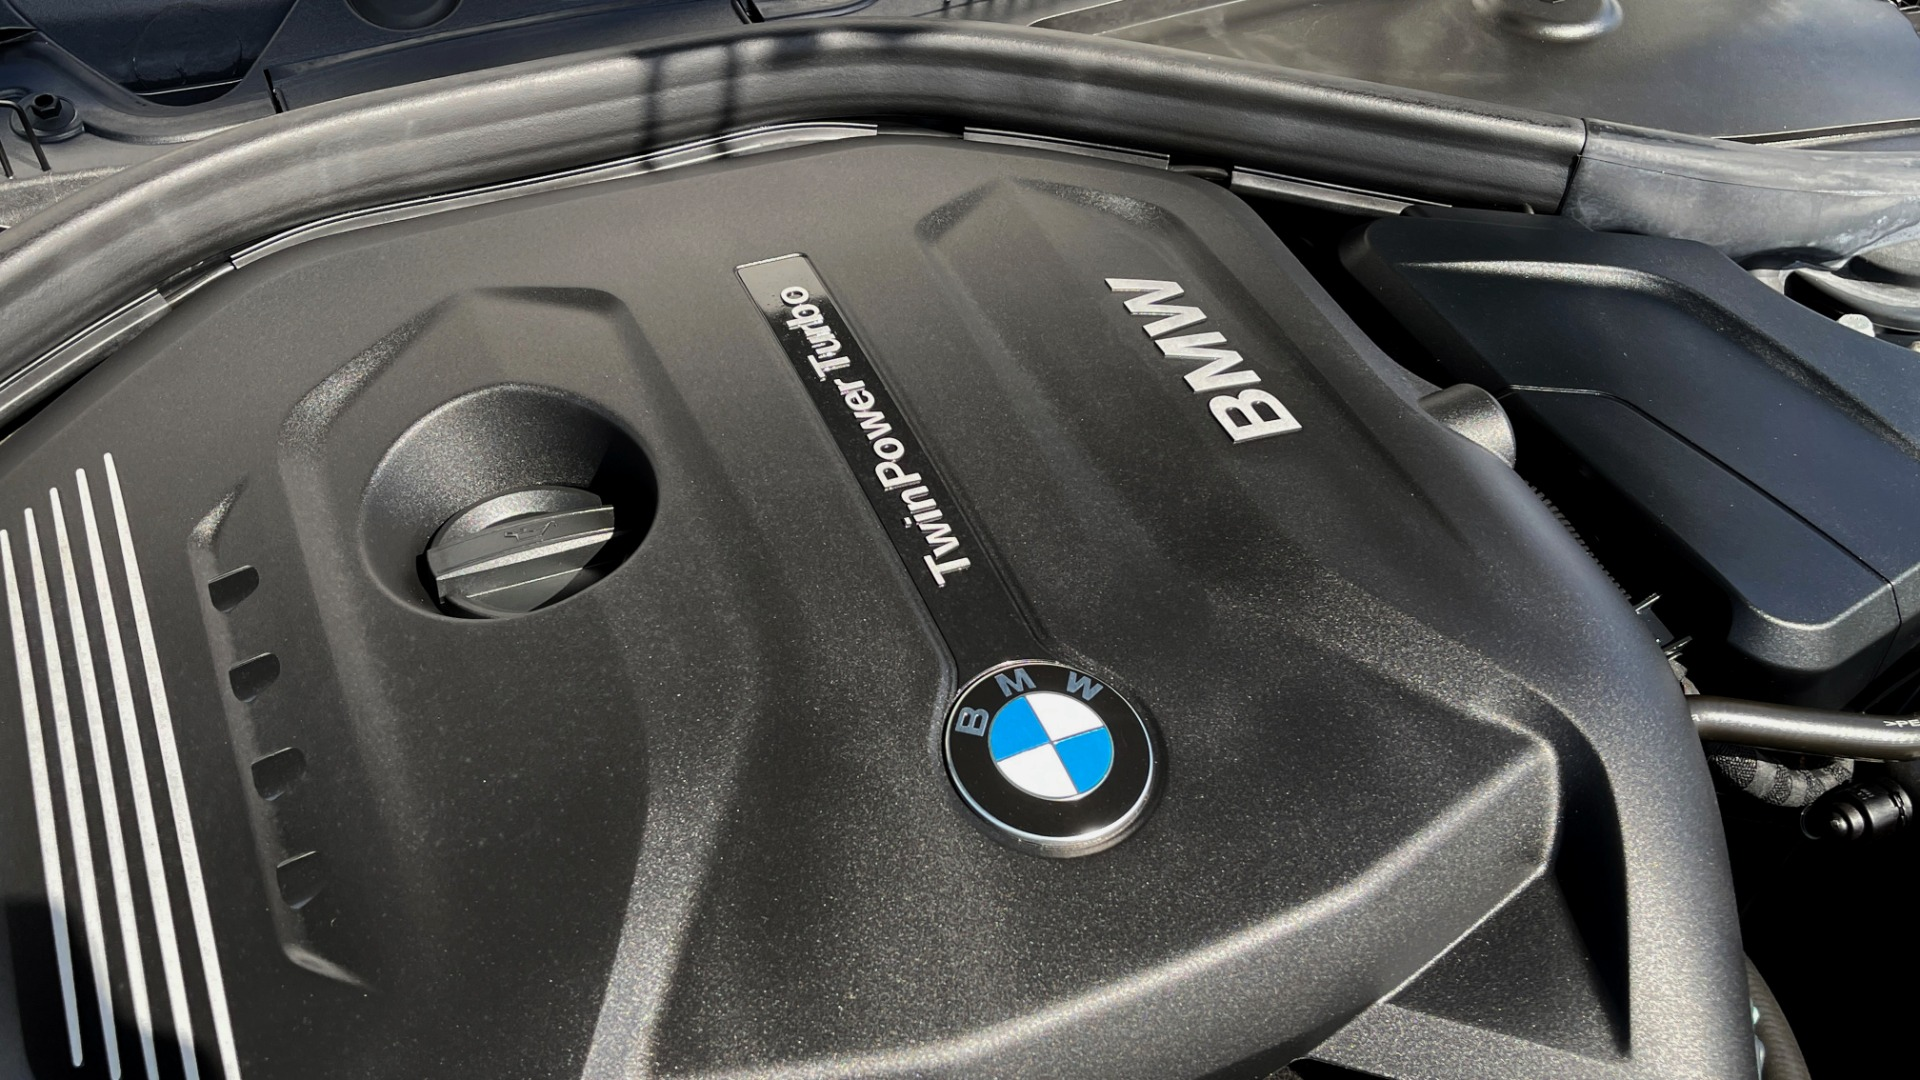 Used 2018 BMW 2 SERIES 230I XDRIVE PREMIUM / CONV PKG / NAV / SUNROOF / REARVIEW for sale $30,795 at Formula Imports in Charlotte NC 28227 9